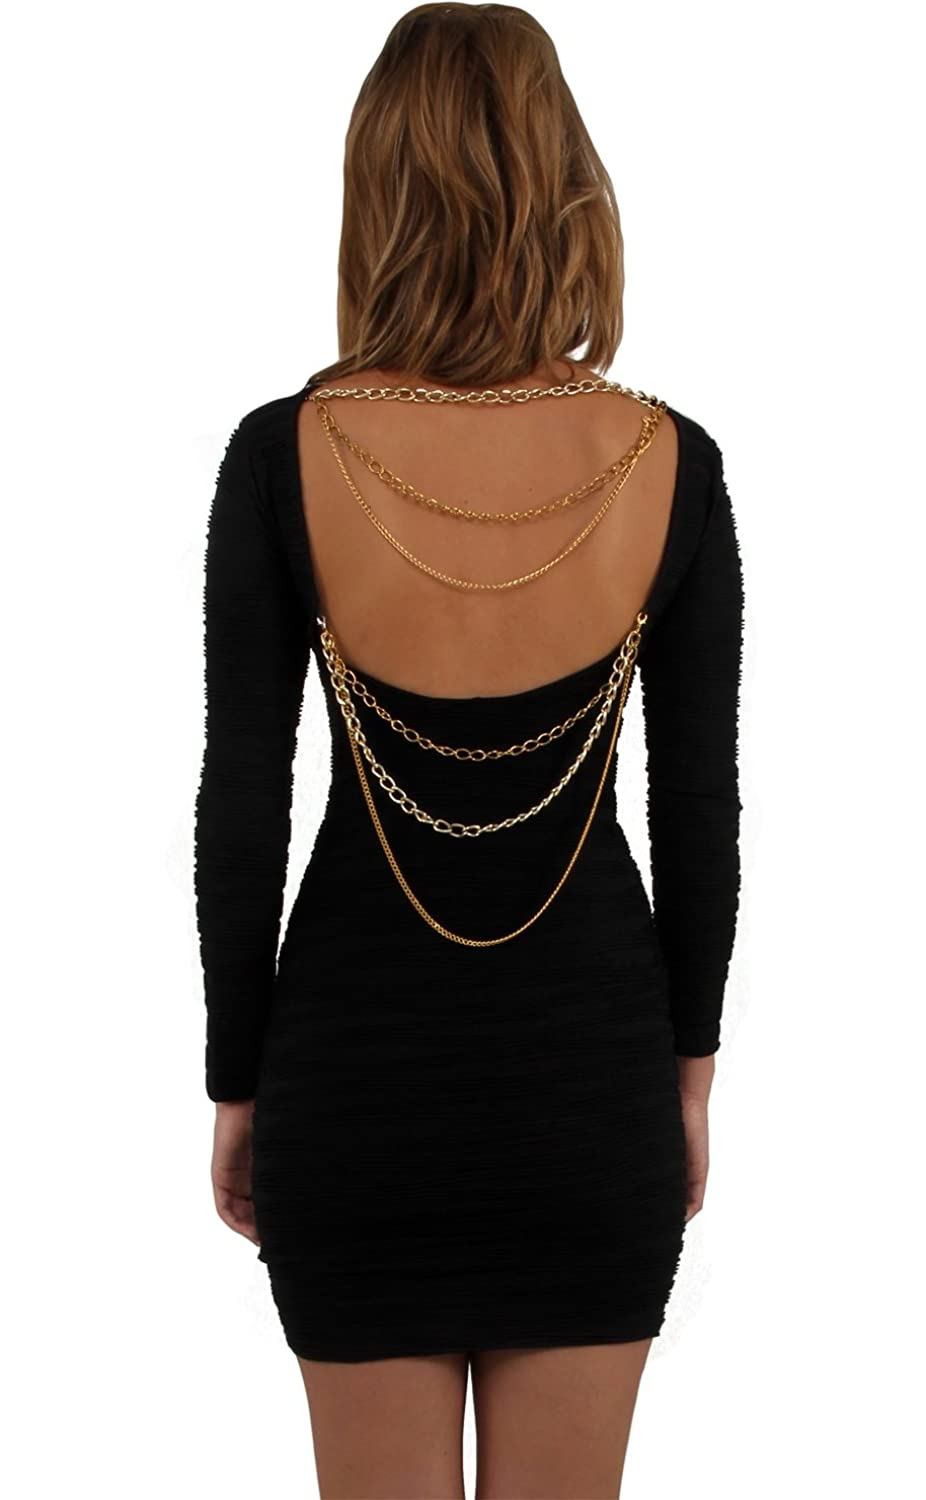 Ladies Black Dress Backless Bodycon Clubbing Mini Short stretchy Chain party